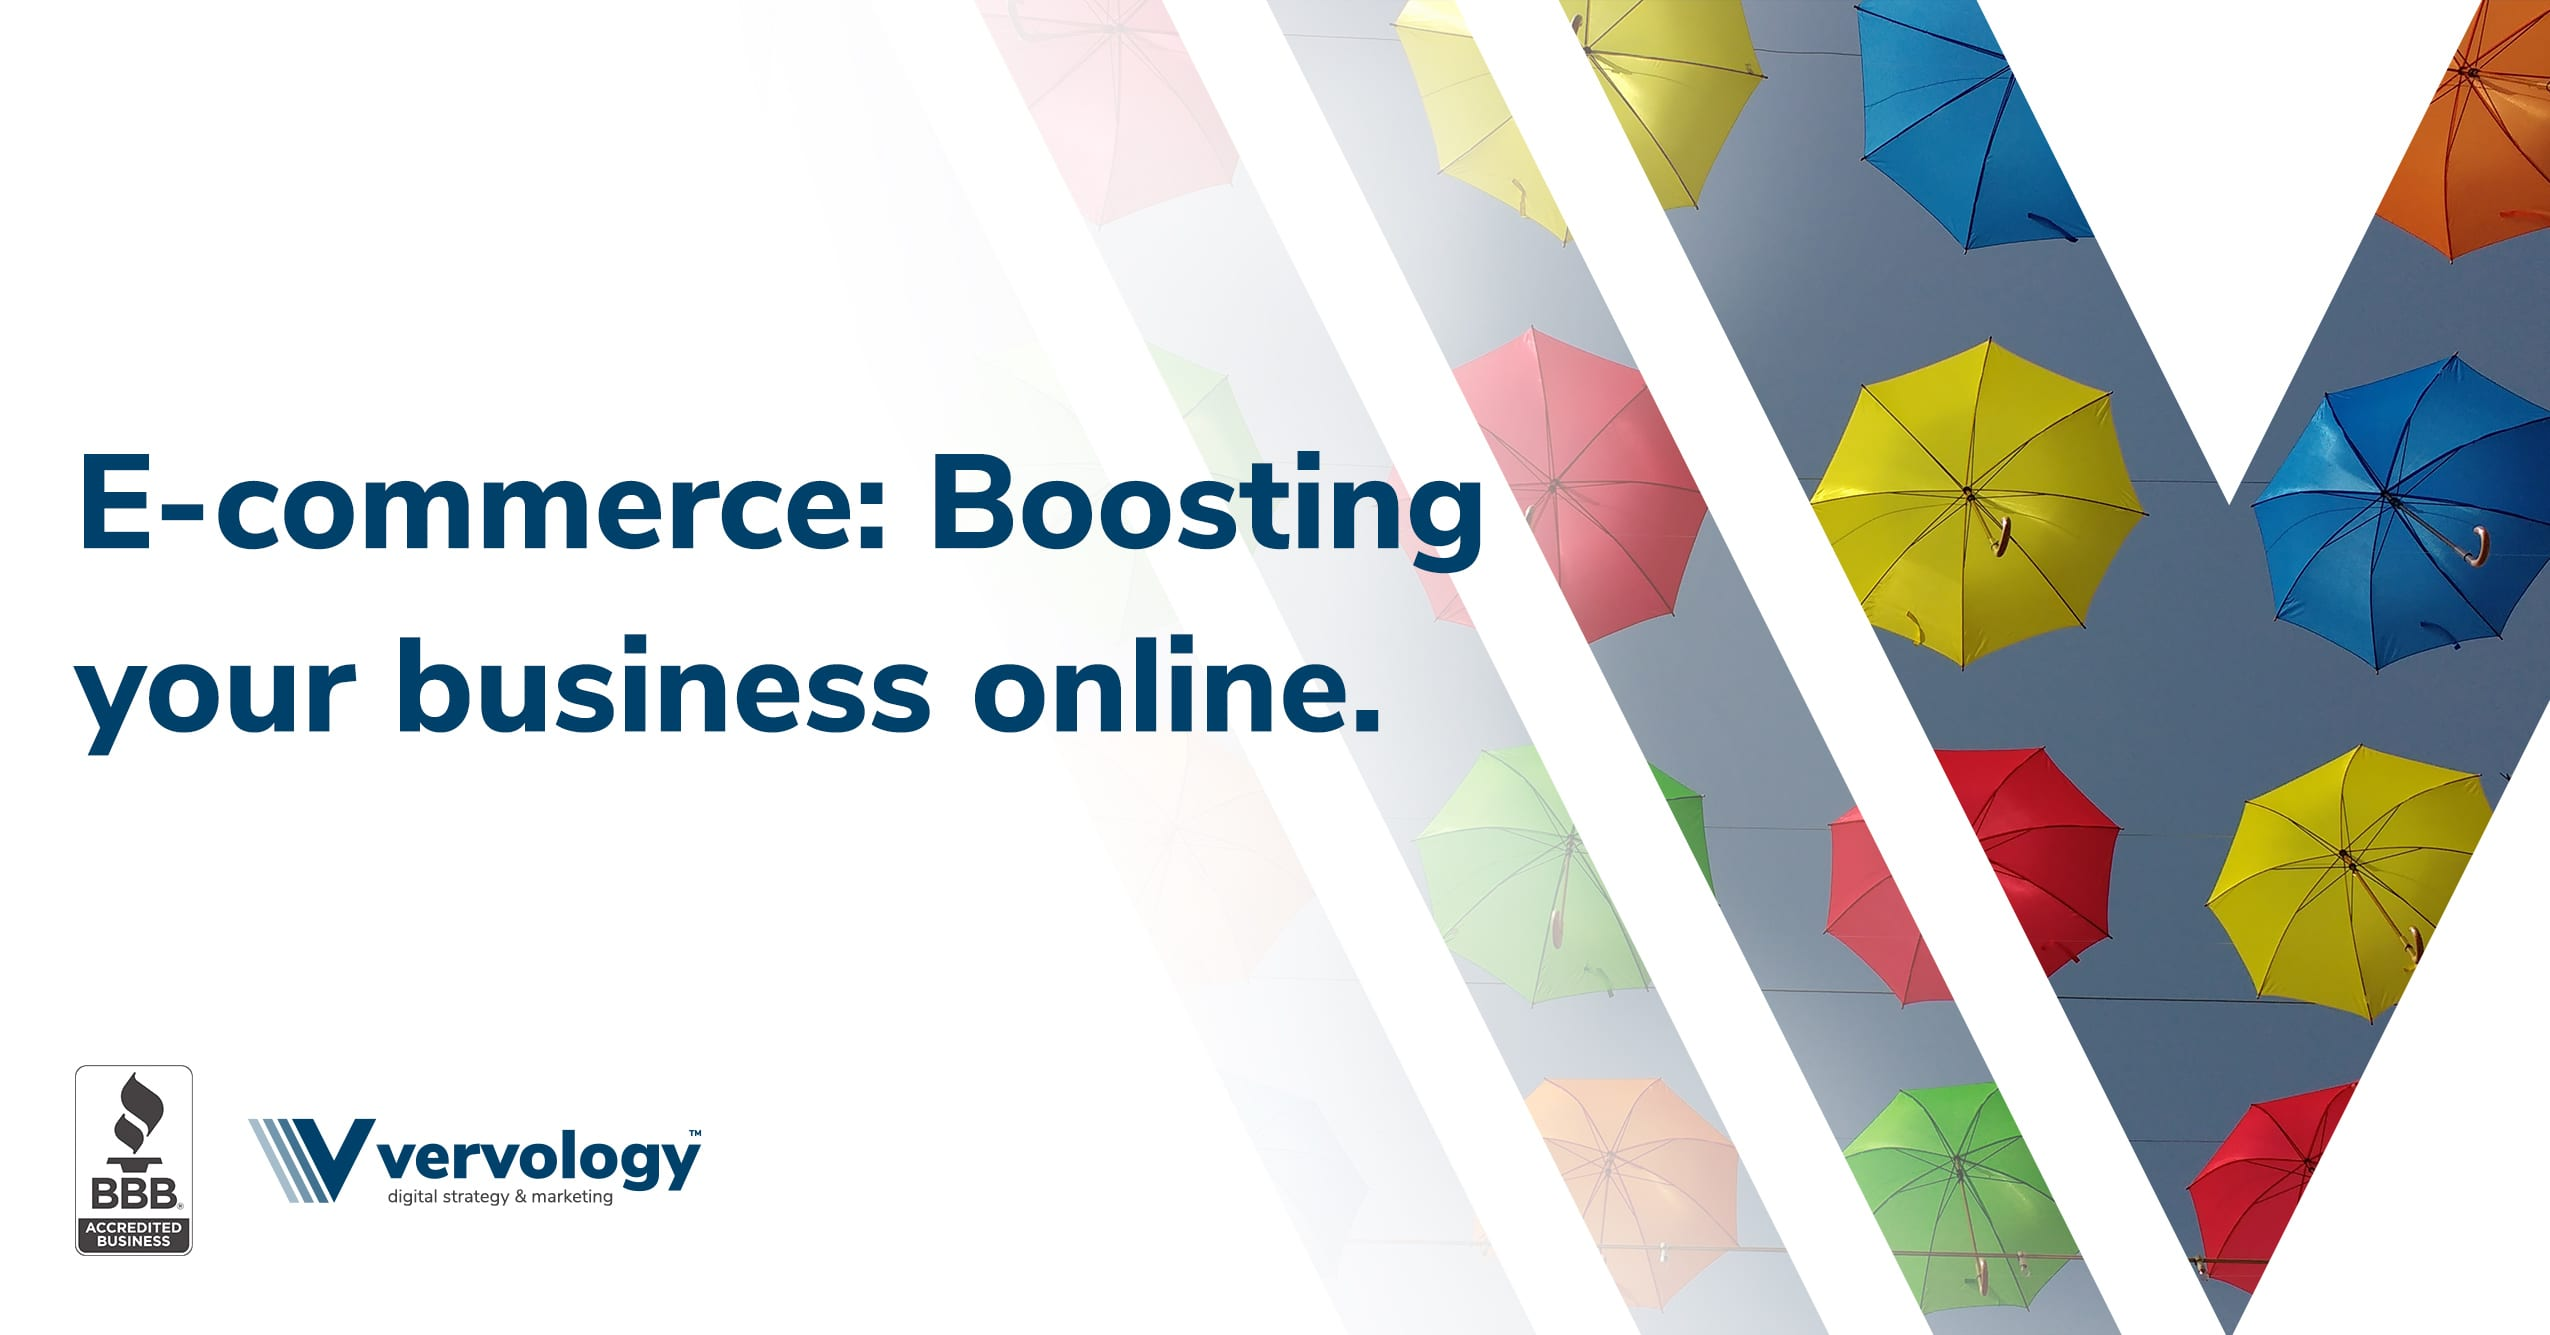 E-commerce: Boosting your business online.